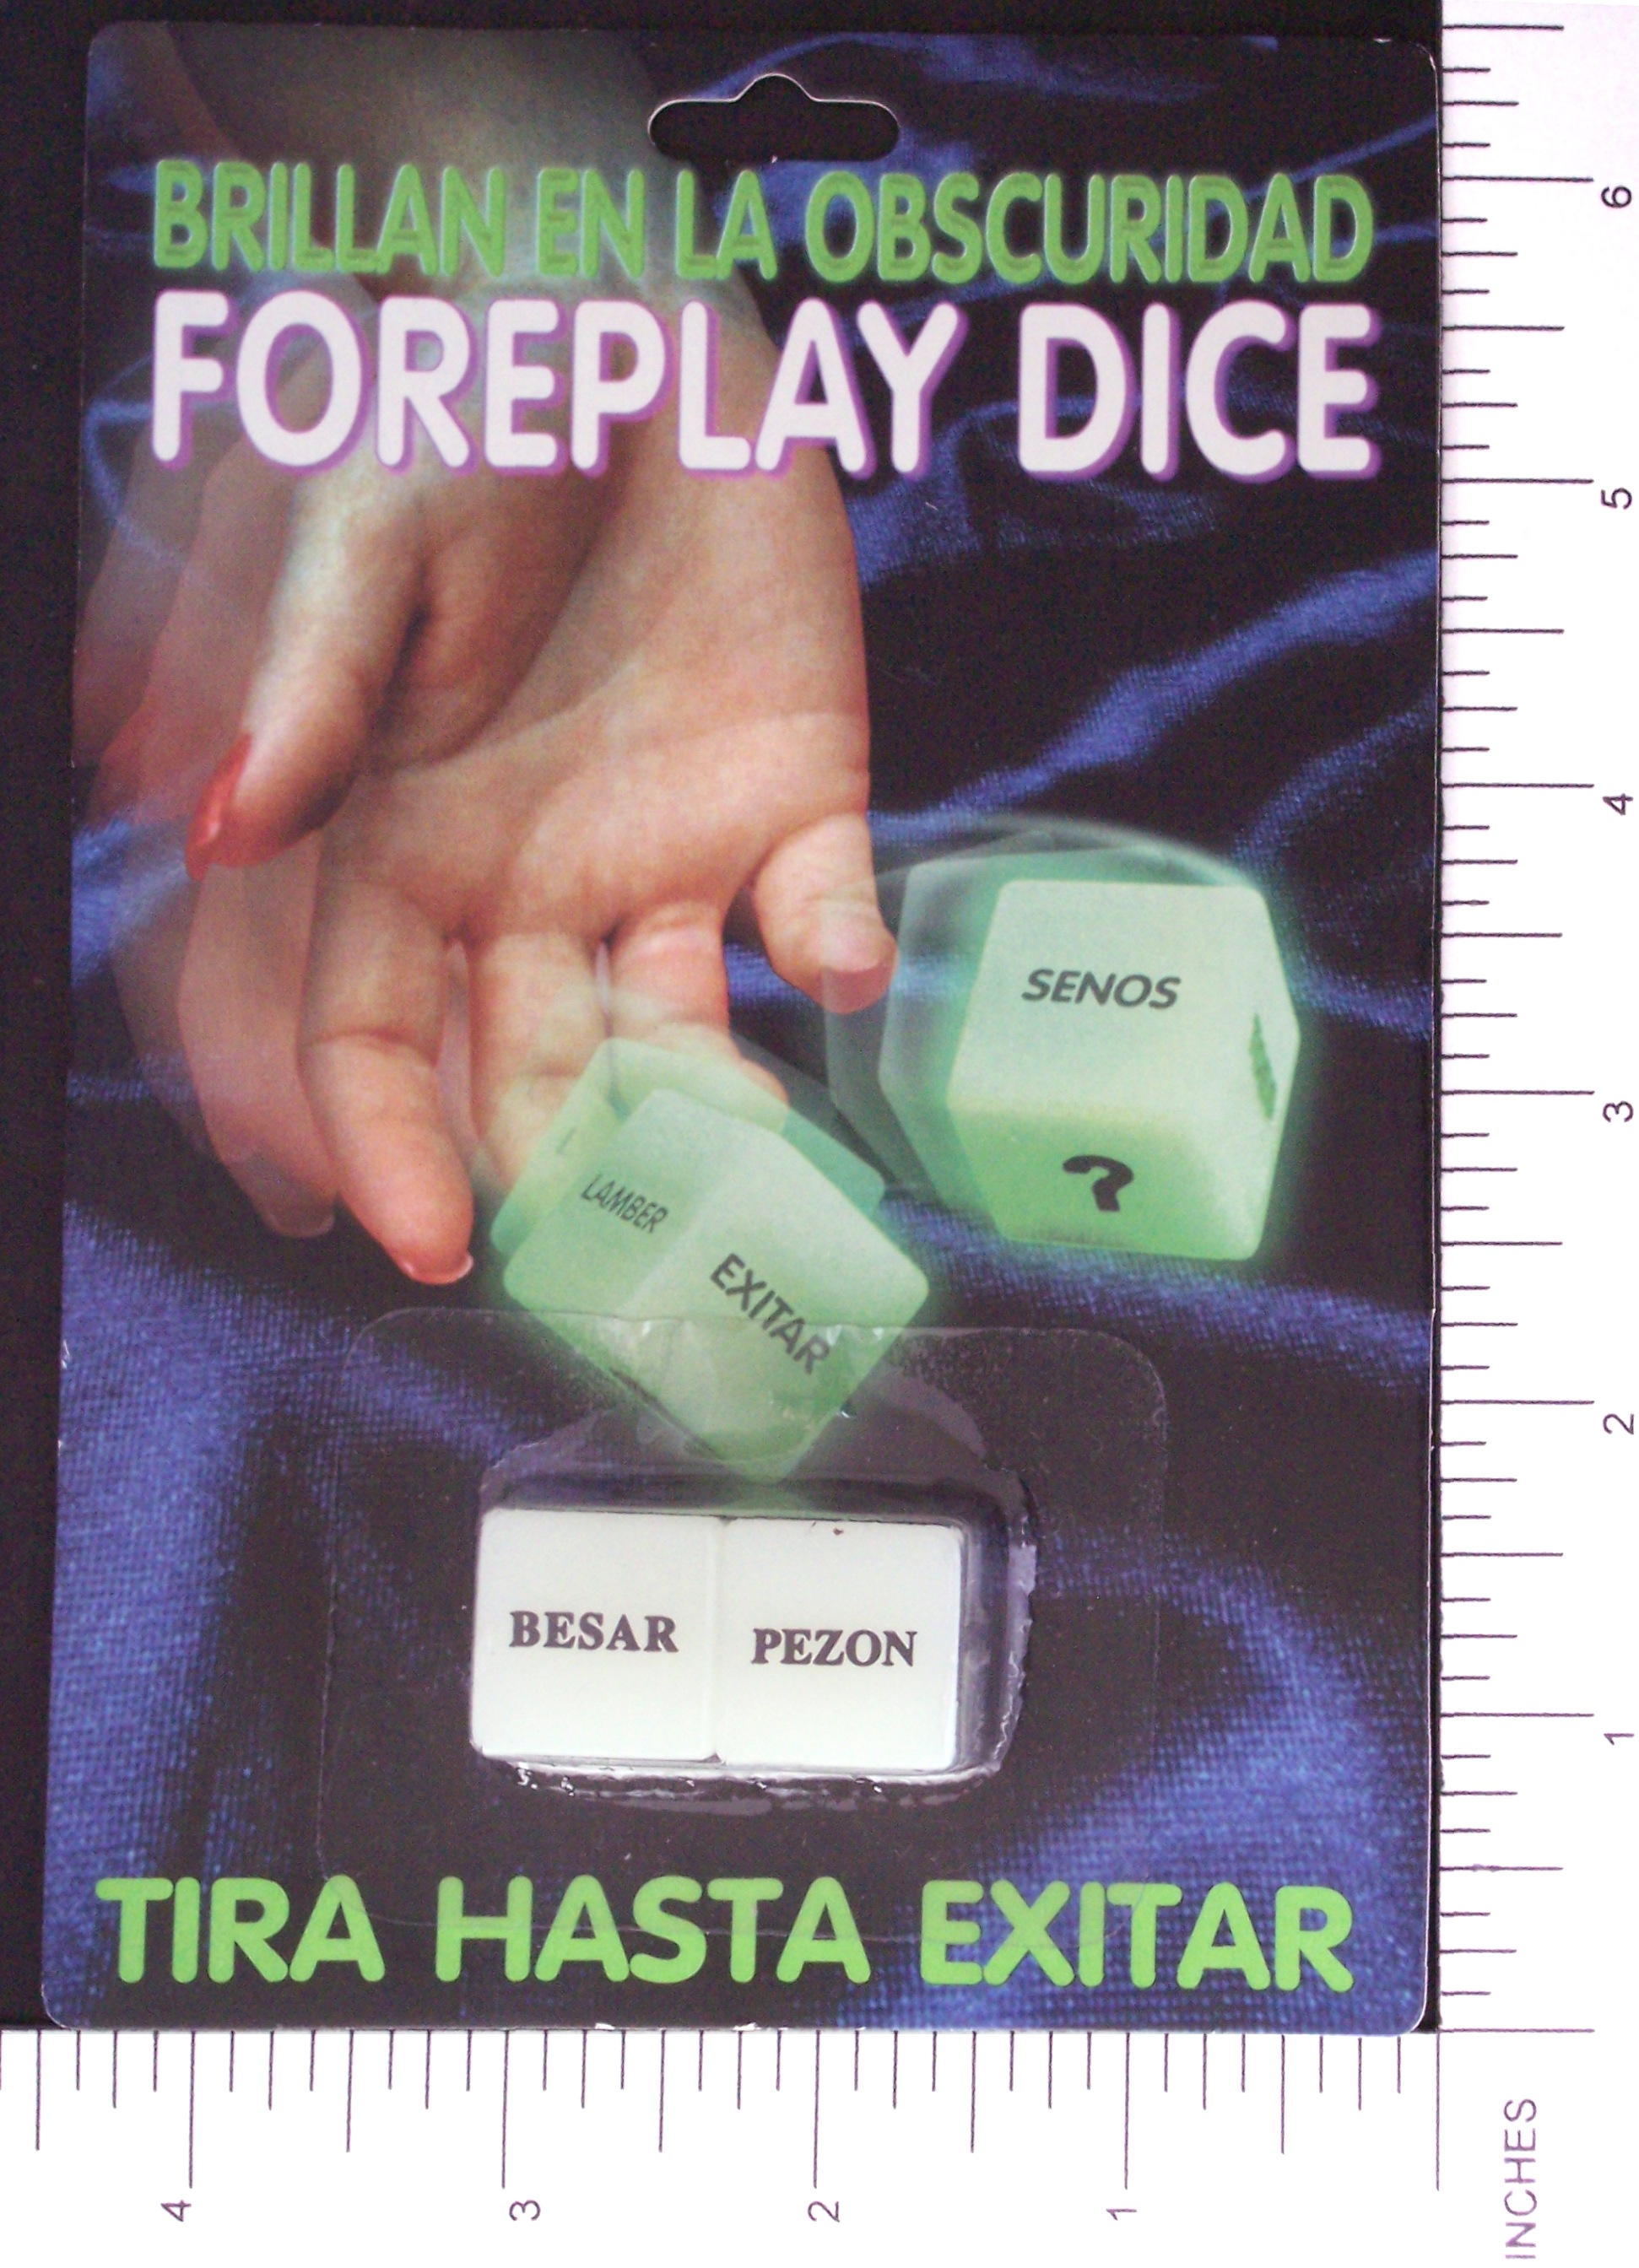 SEX PIPE DREAM 03 GLOW IN THE DARK EROTIC DICE SPANISH Pamela Anderson